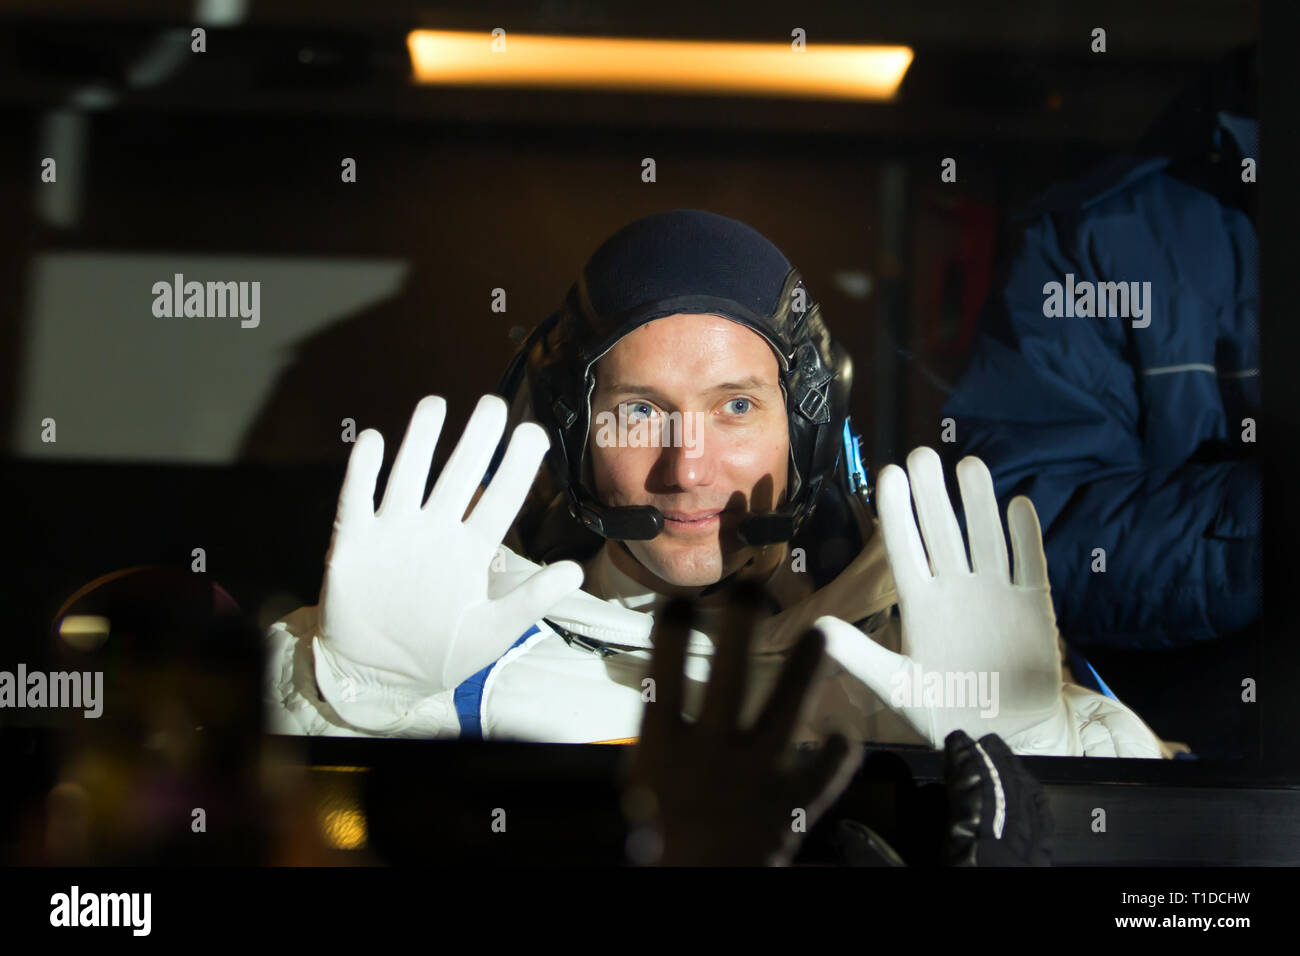 BAIKONUR - French astronaut Thomas Pesquet puts his hands on the window of a bus at the cosmodrome that will carry him to the Gagarin Launchpad - Stock Image